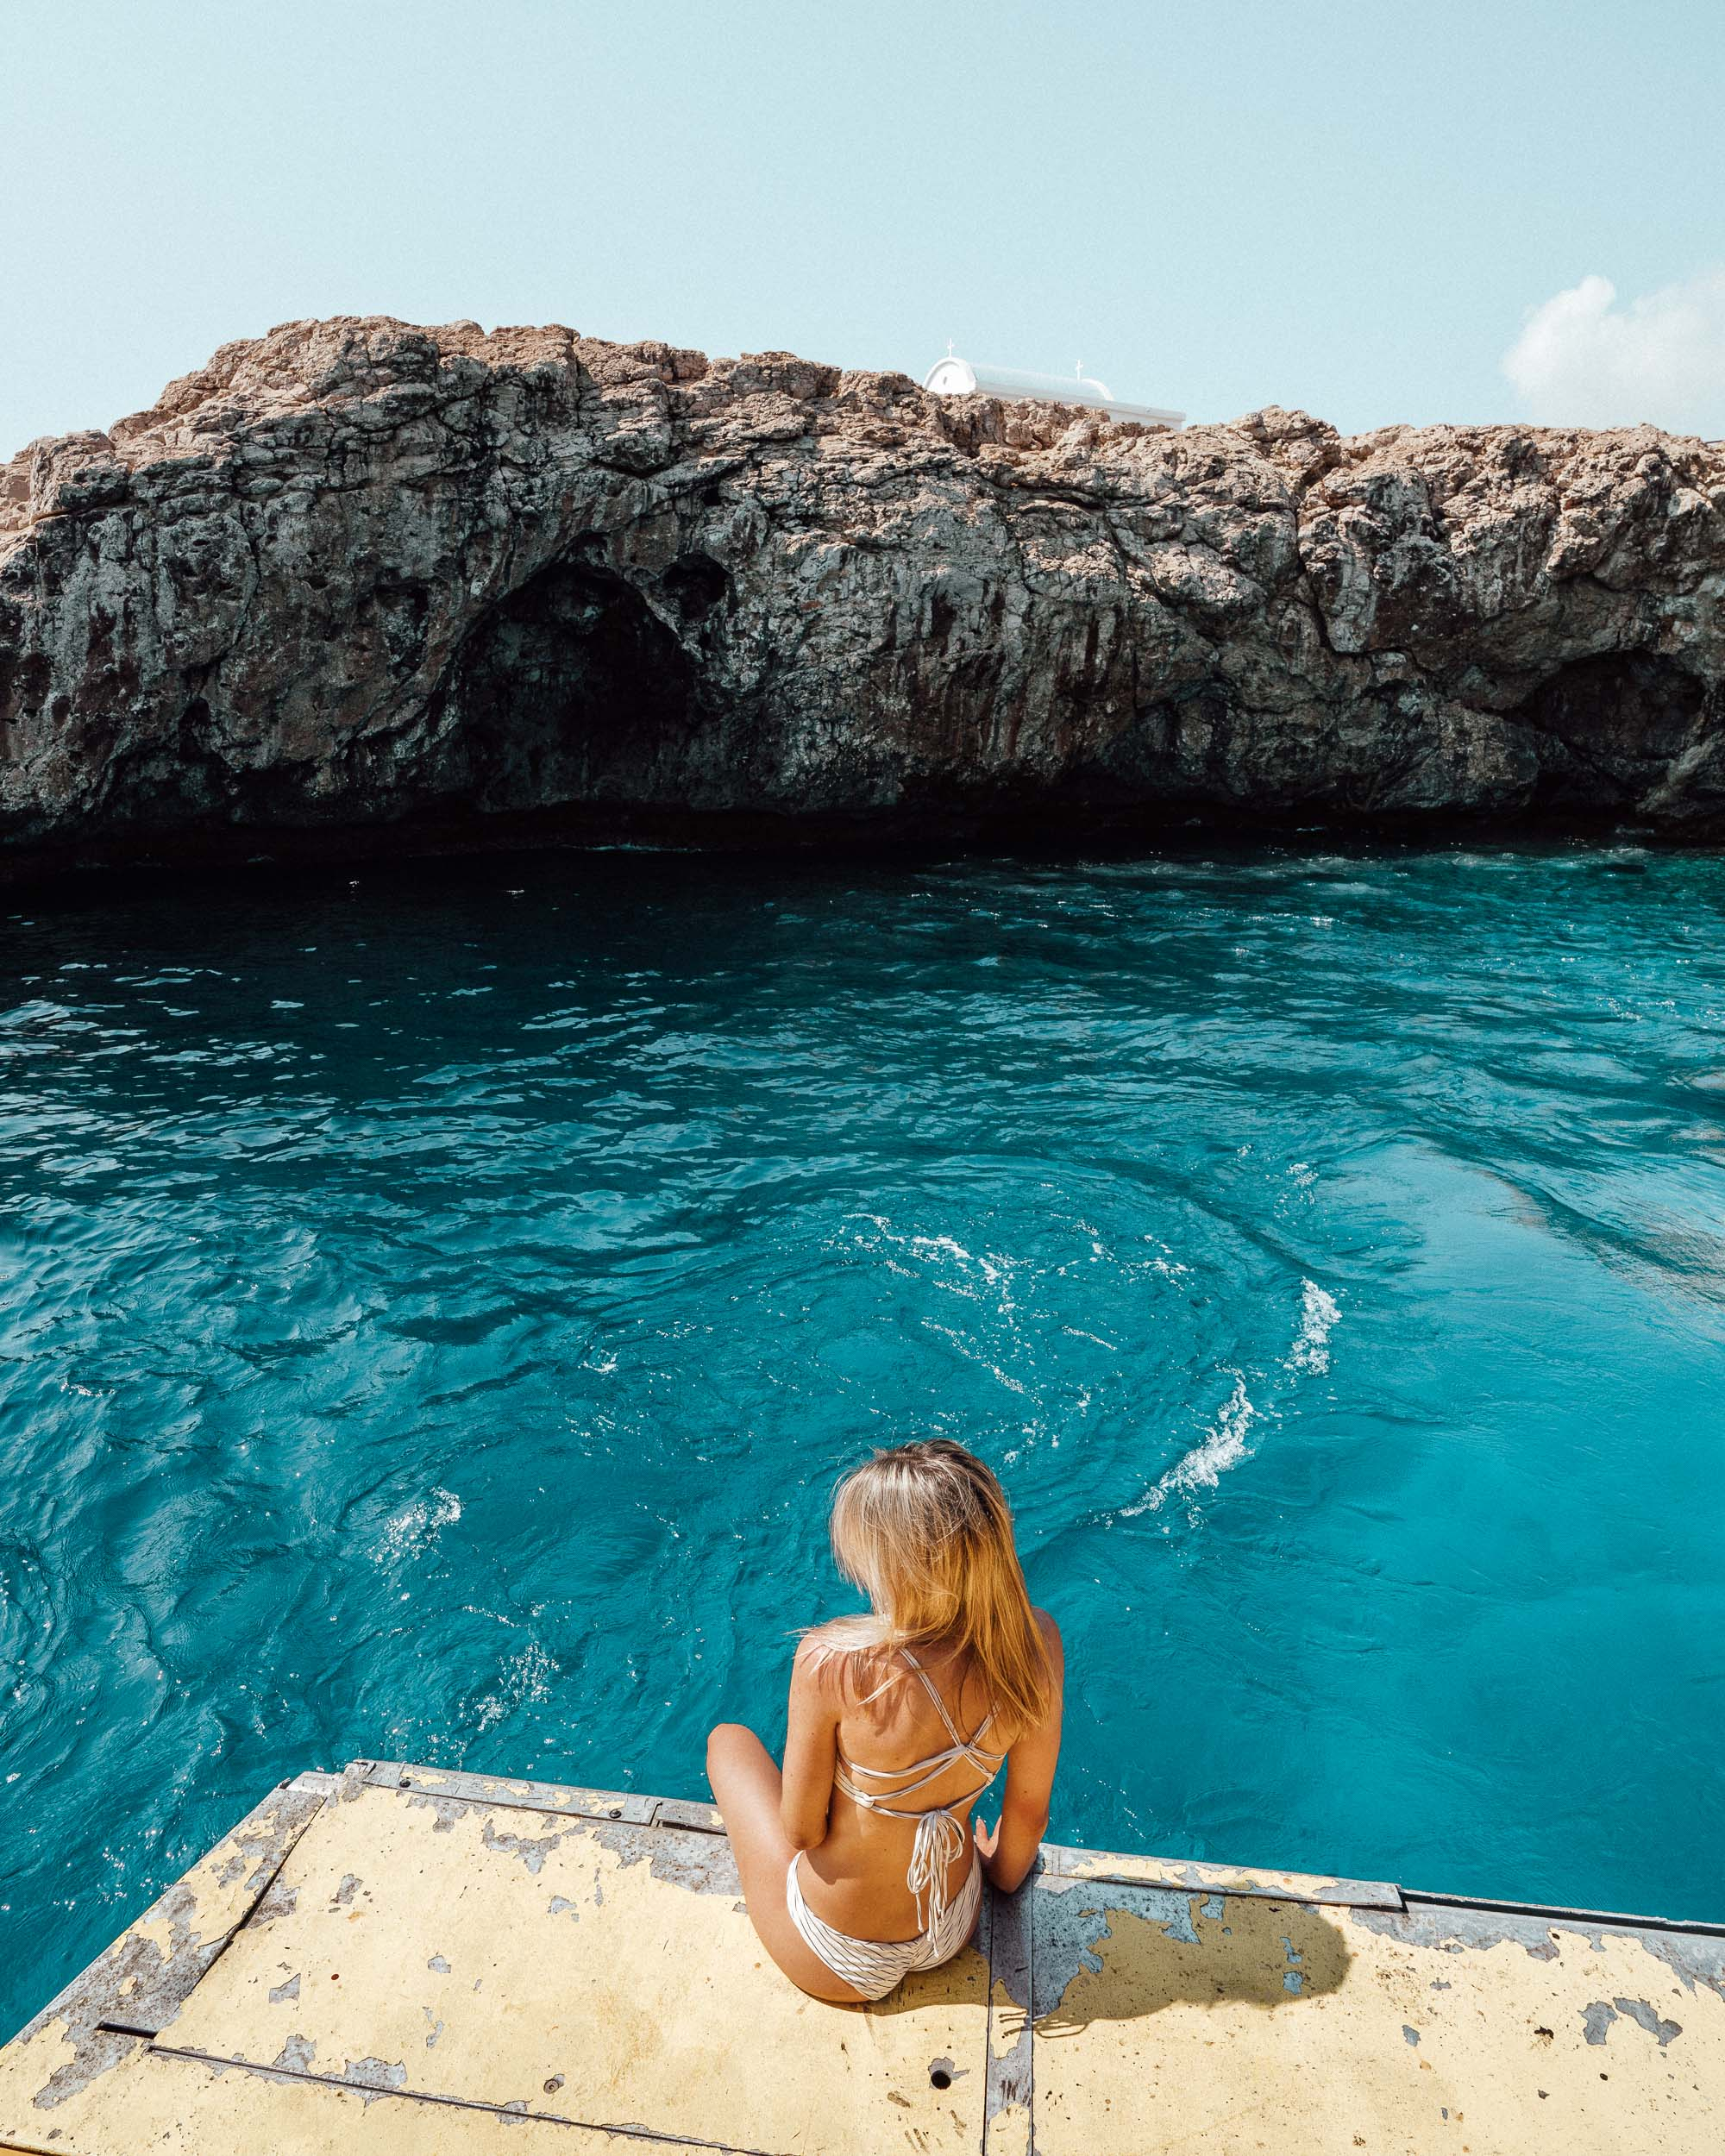 Sea caves in Paphos Cyprus via @finduslost